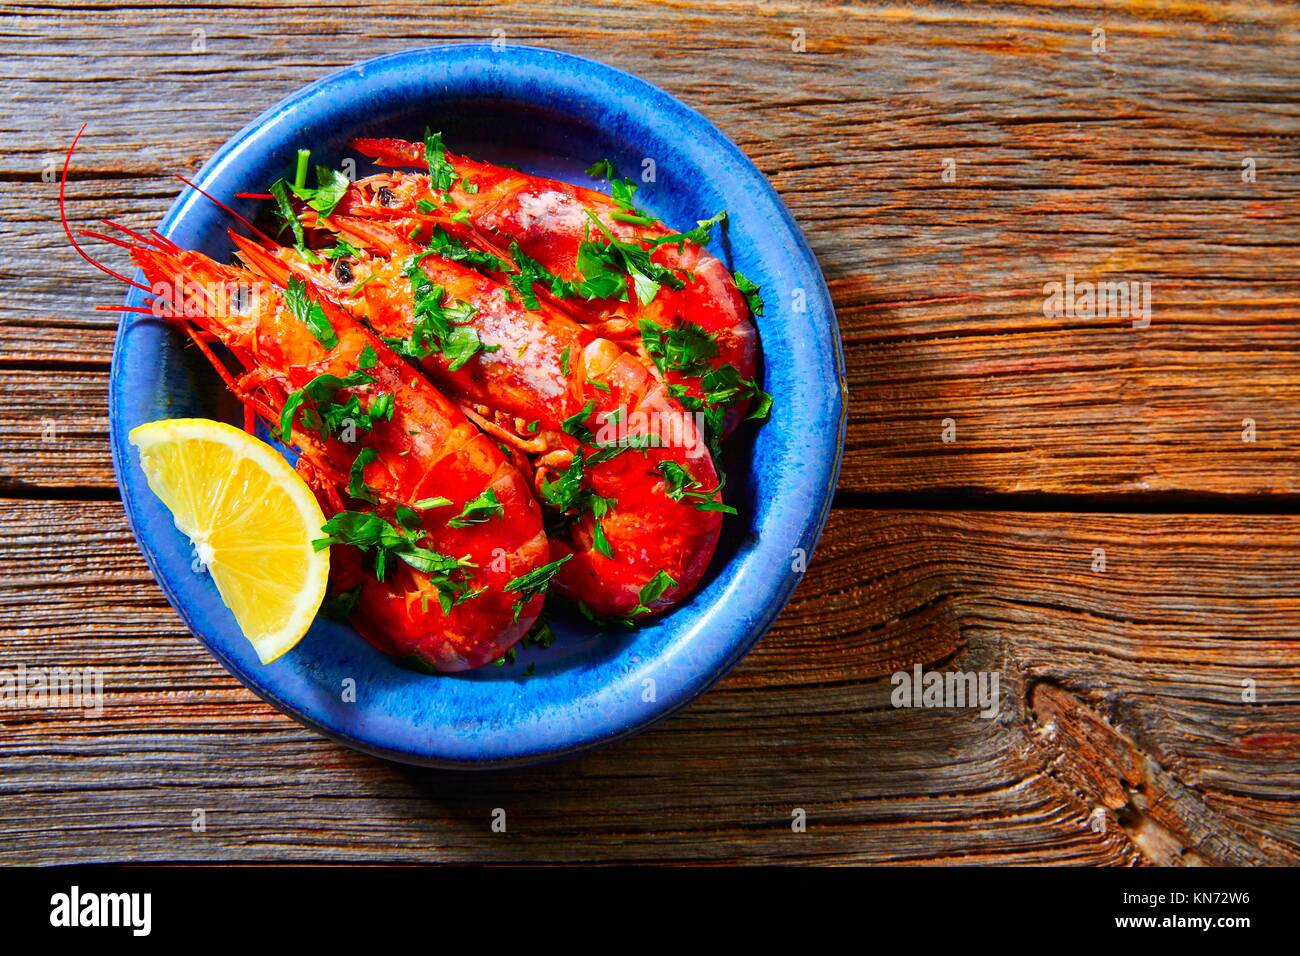 Tapas shrimps prawns seafood from Spain recipes. - Stock Image